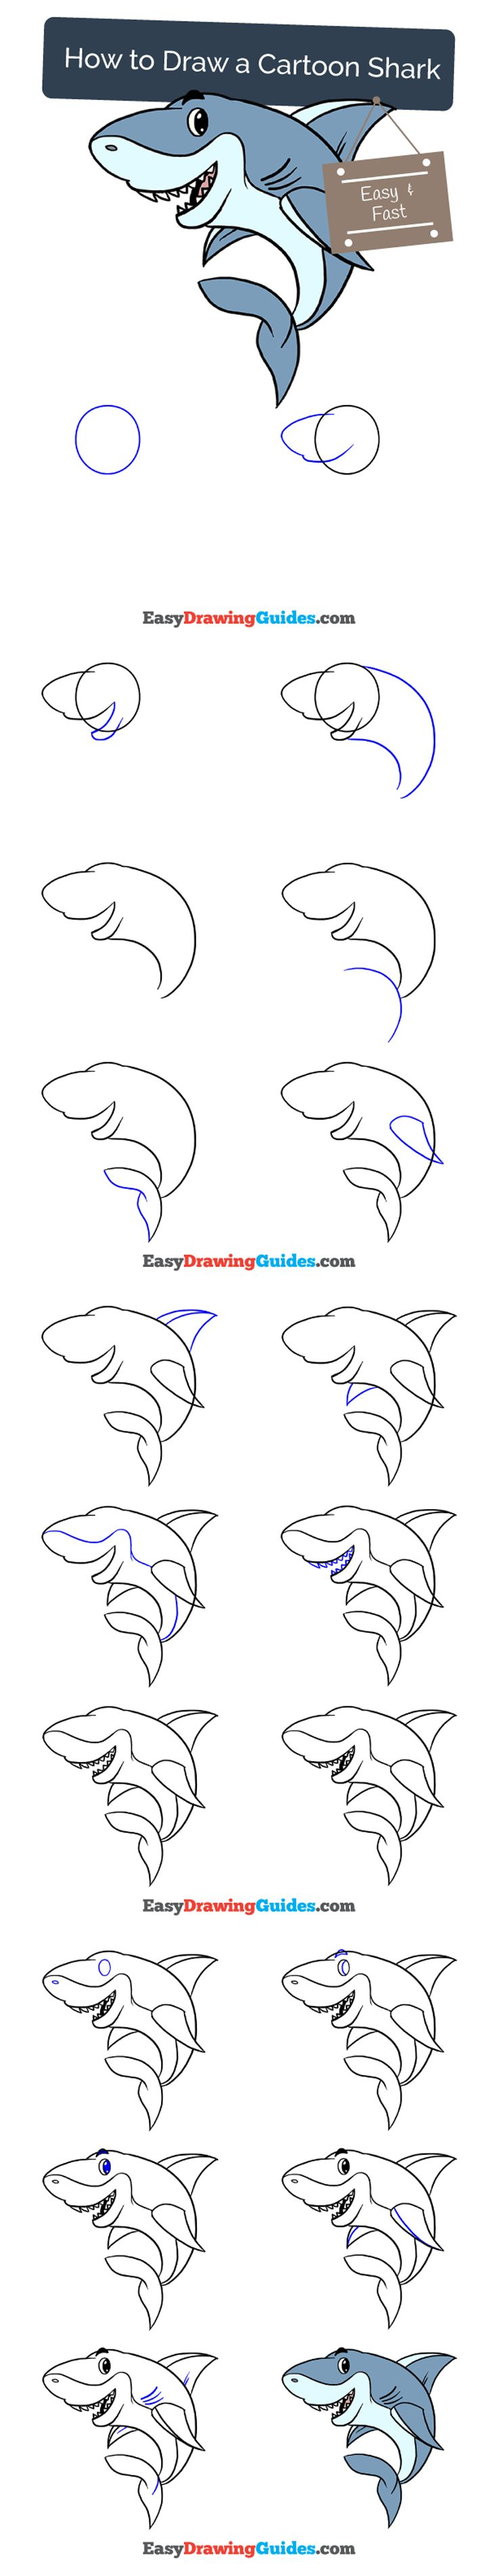 Learn How to Draw Cartoon Shark: Easy Step-by-Step Drawing Tutorial for Kids and Beginners. #Cartoon Shark #drawingtutorial #easydrawing See the full tutorial at https://easydrawingguides.com/draw-cartoon-shark/.